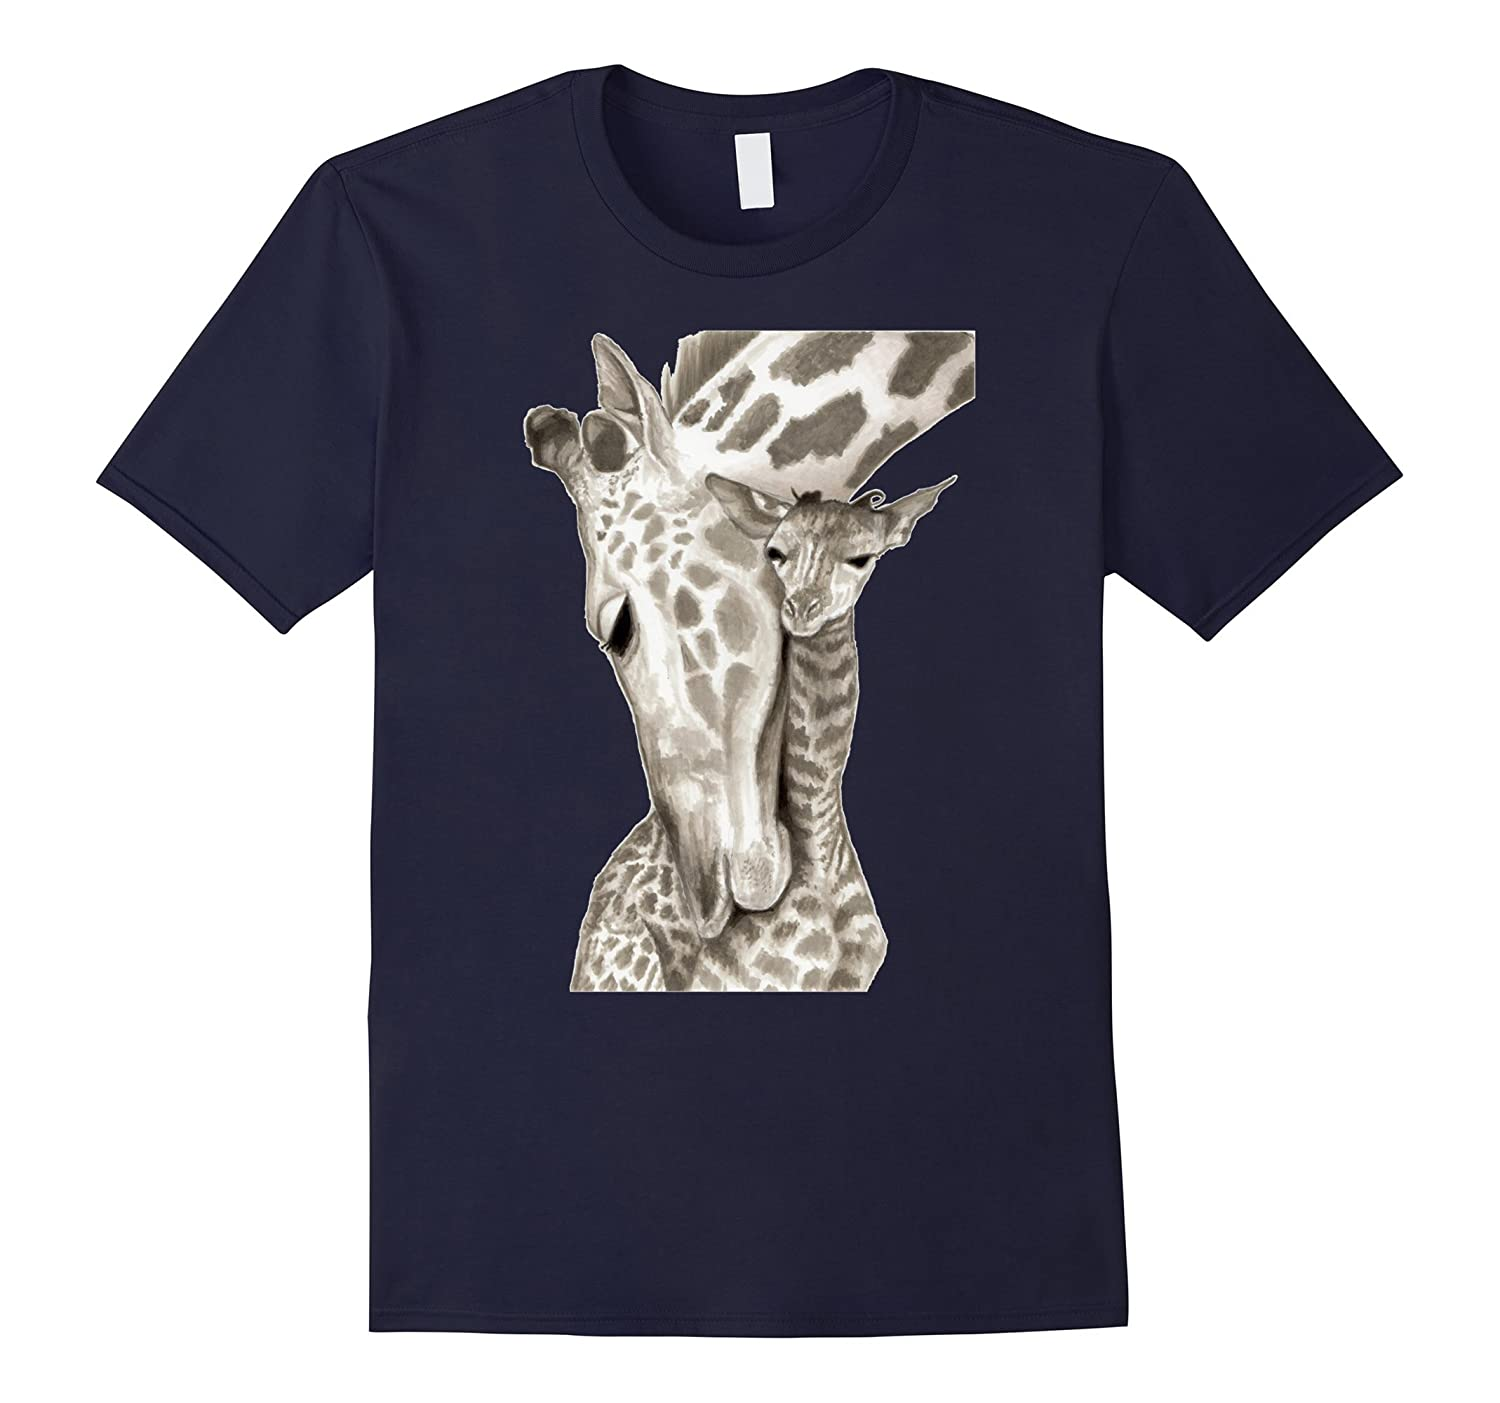 April The Giraffe Art Shirt - The Giraffe Funny Shirt-CD